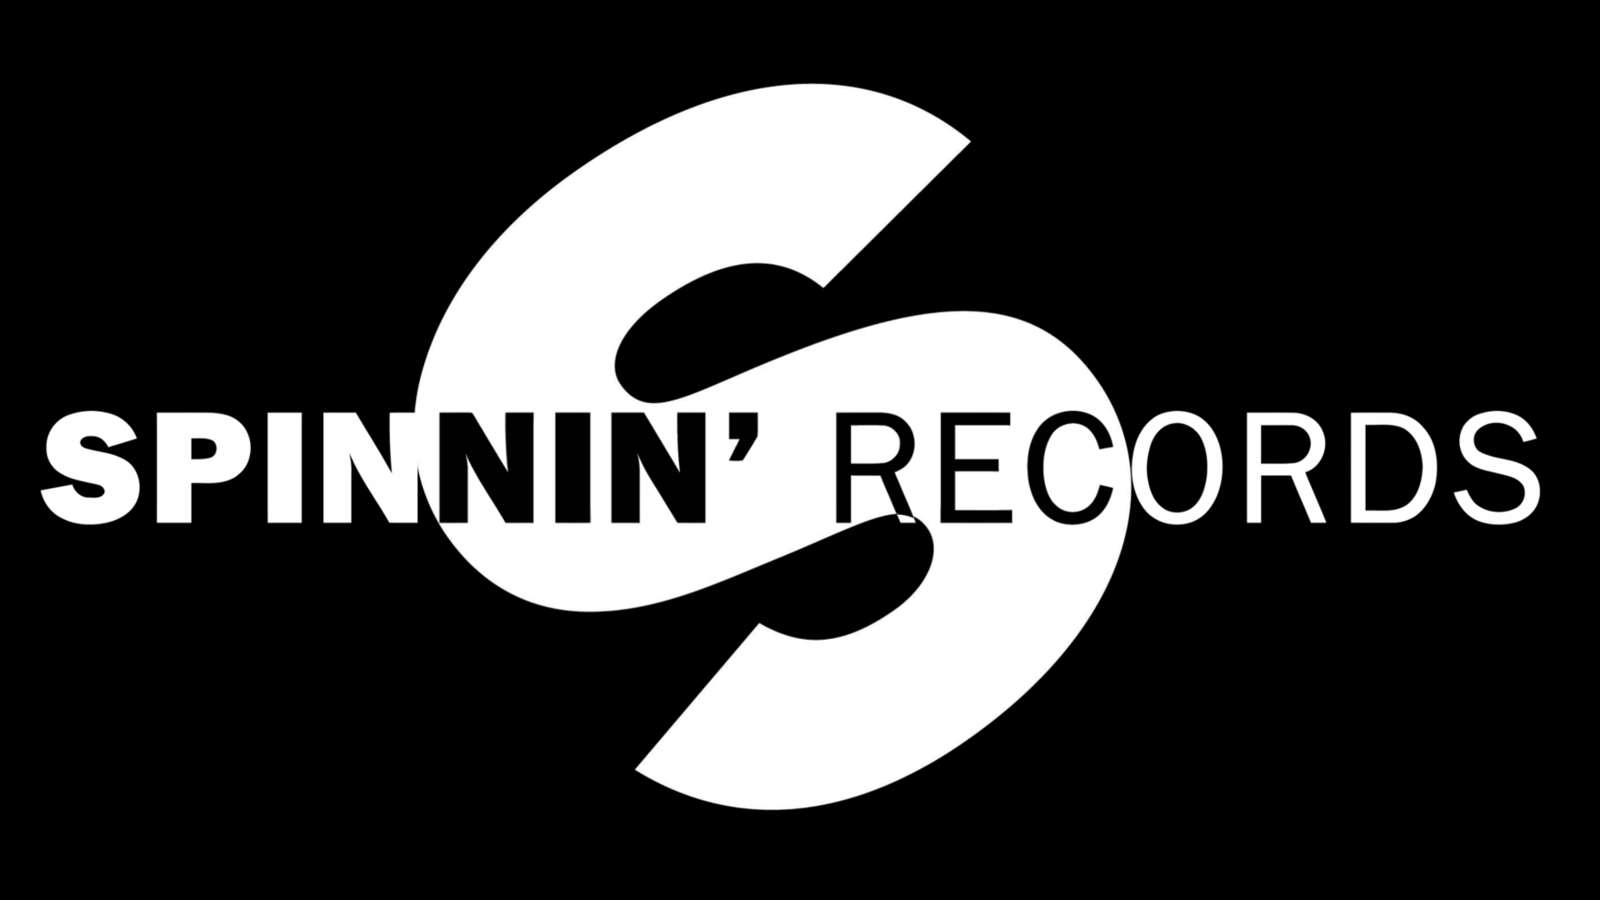 spinnin_records_wallpaper__normal__by_angiegehtsteil-d8ic15b